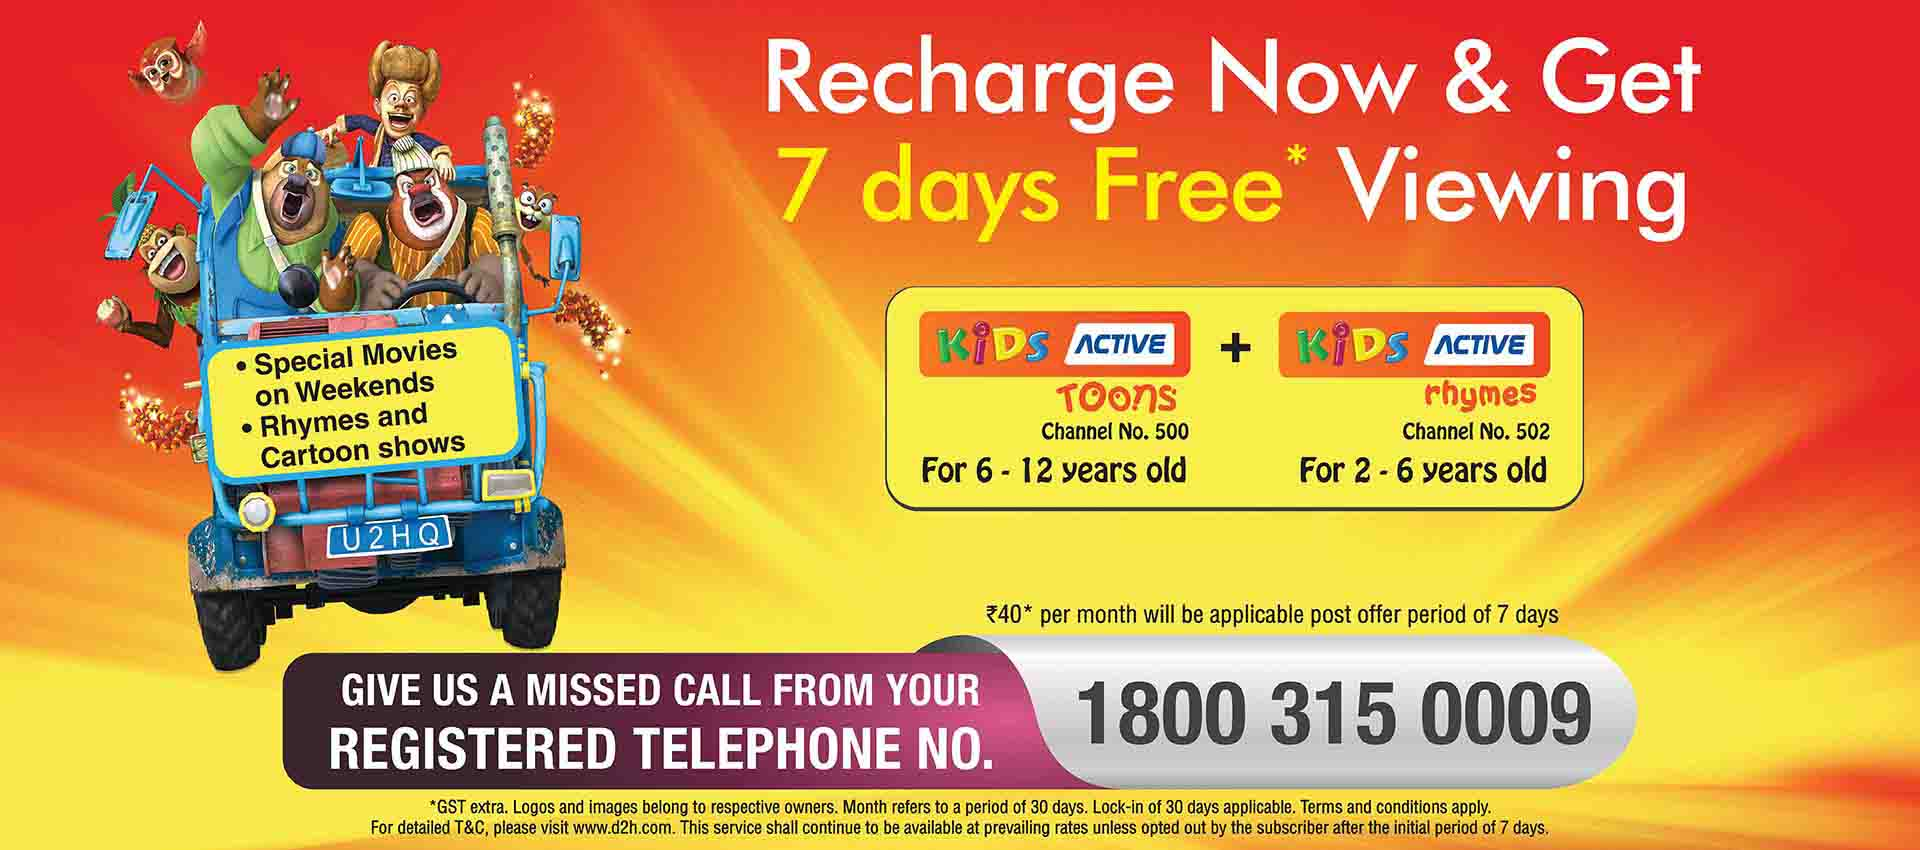 d2h recharge offer Kids Active